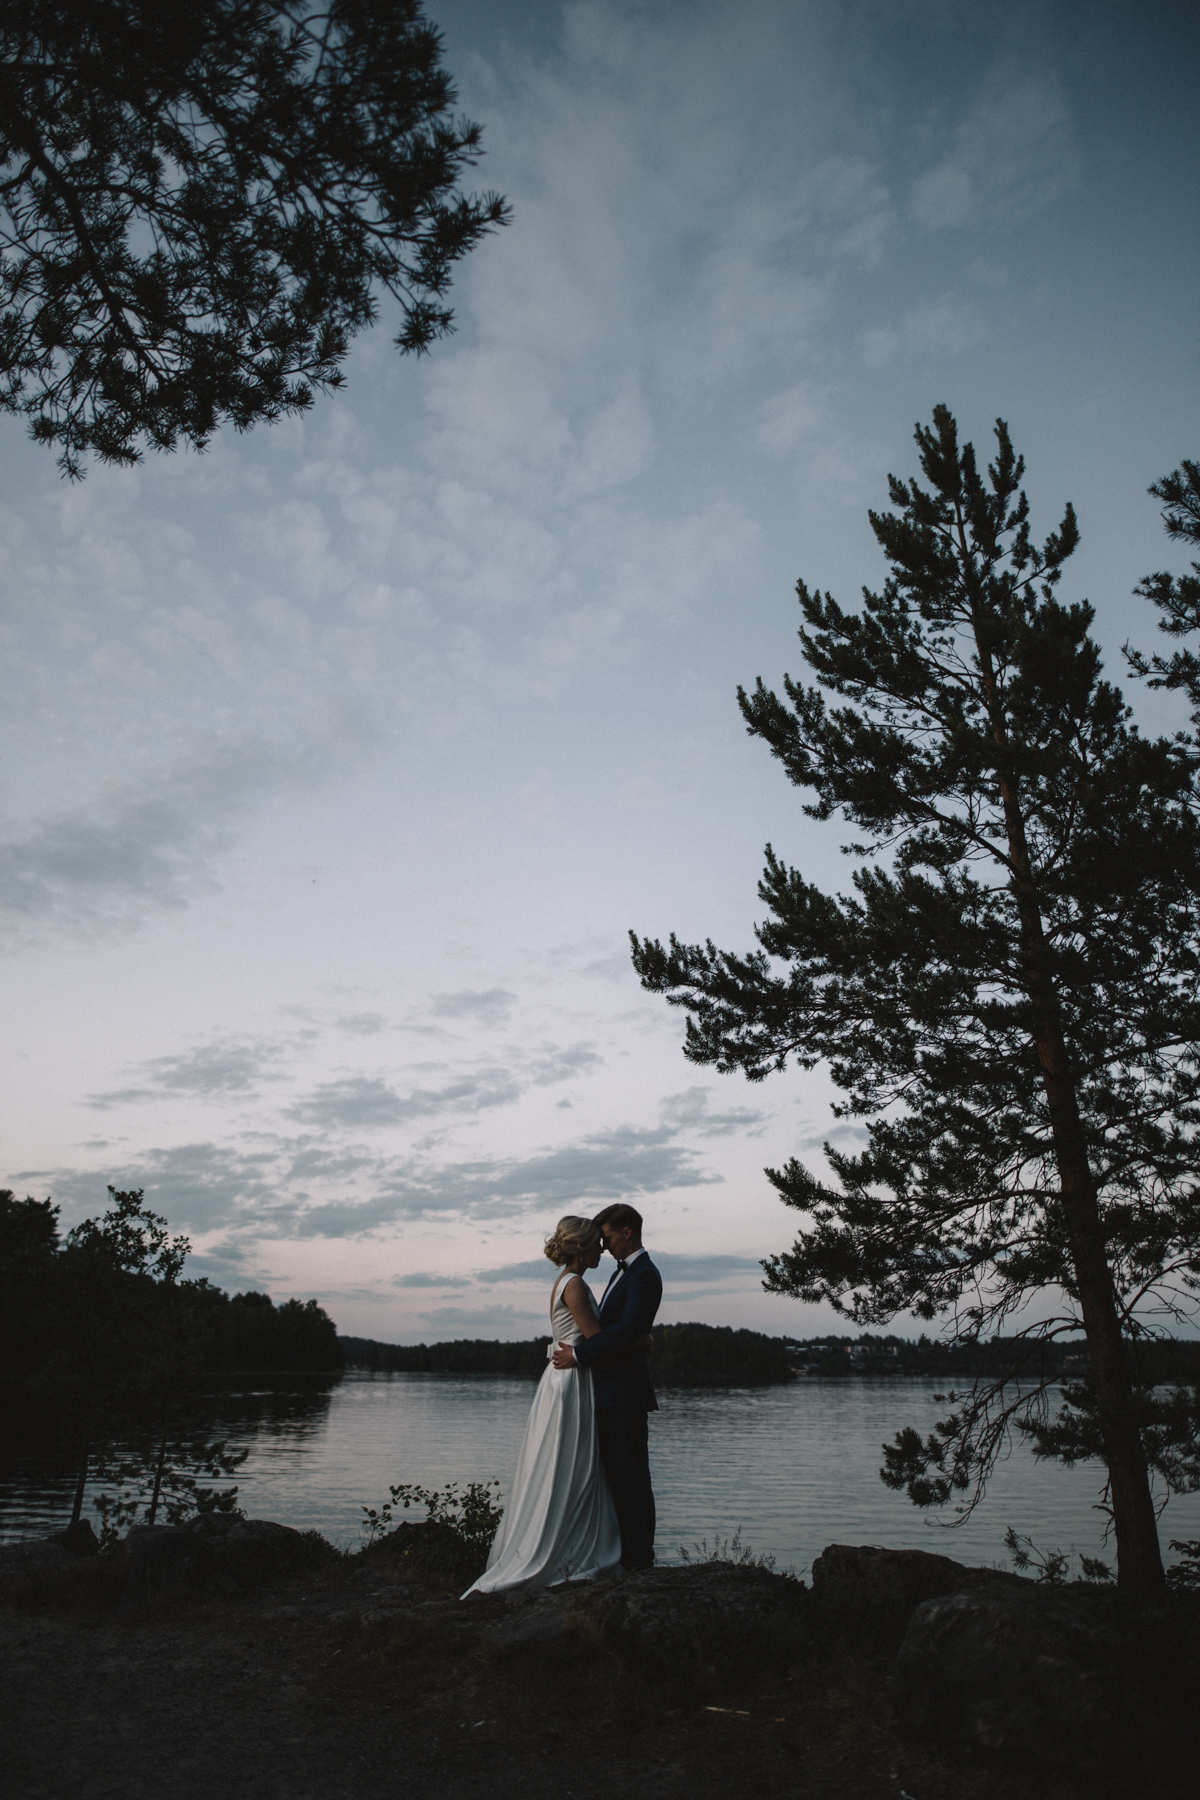 wedding_photography_helsinki-1